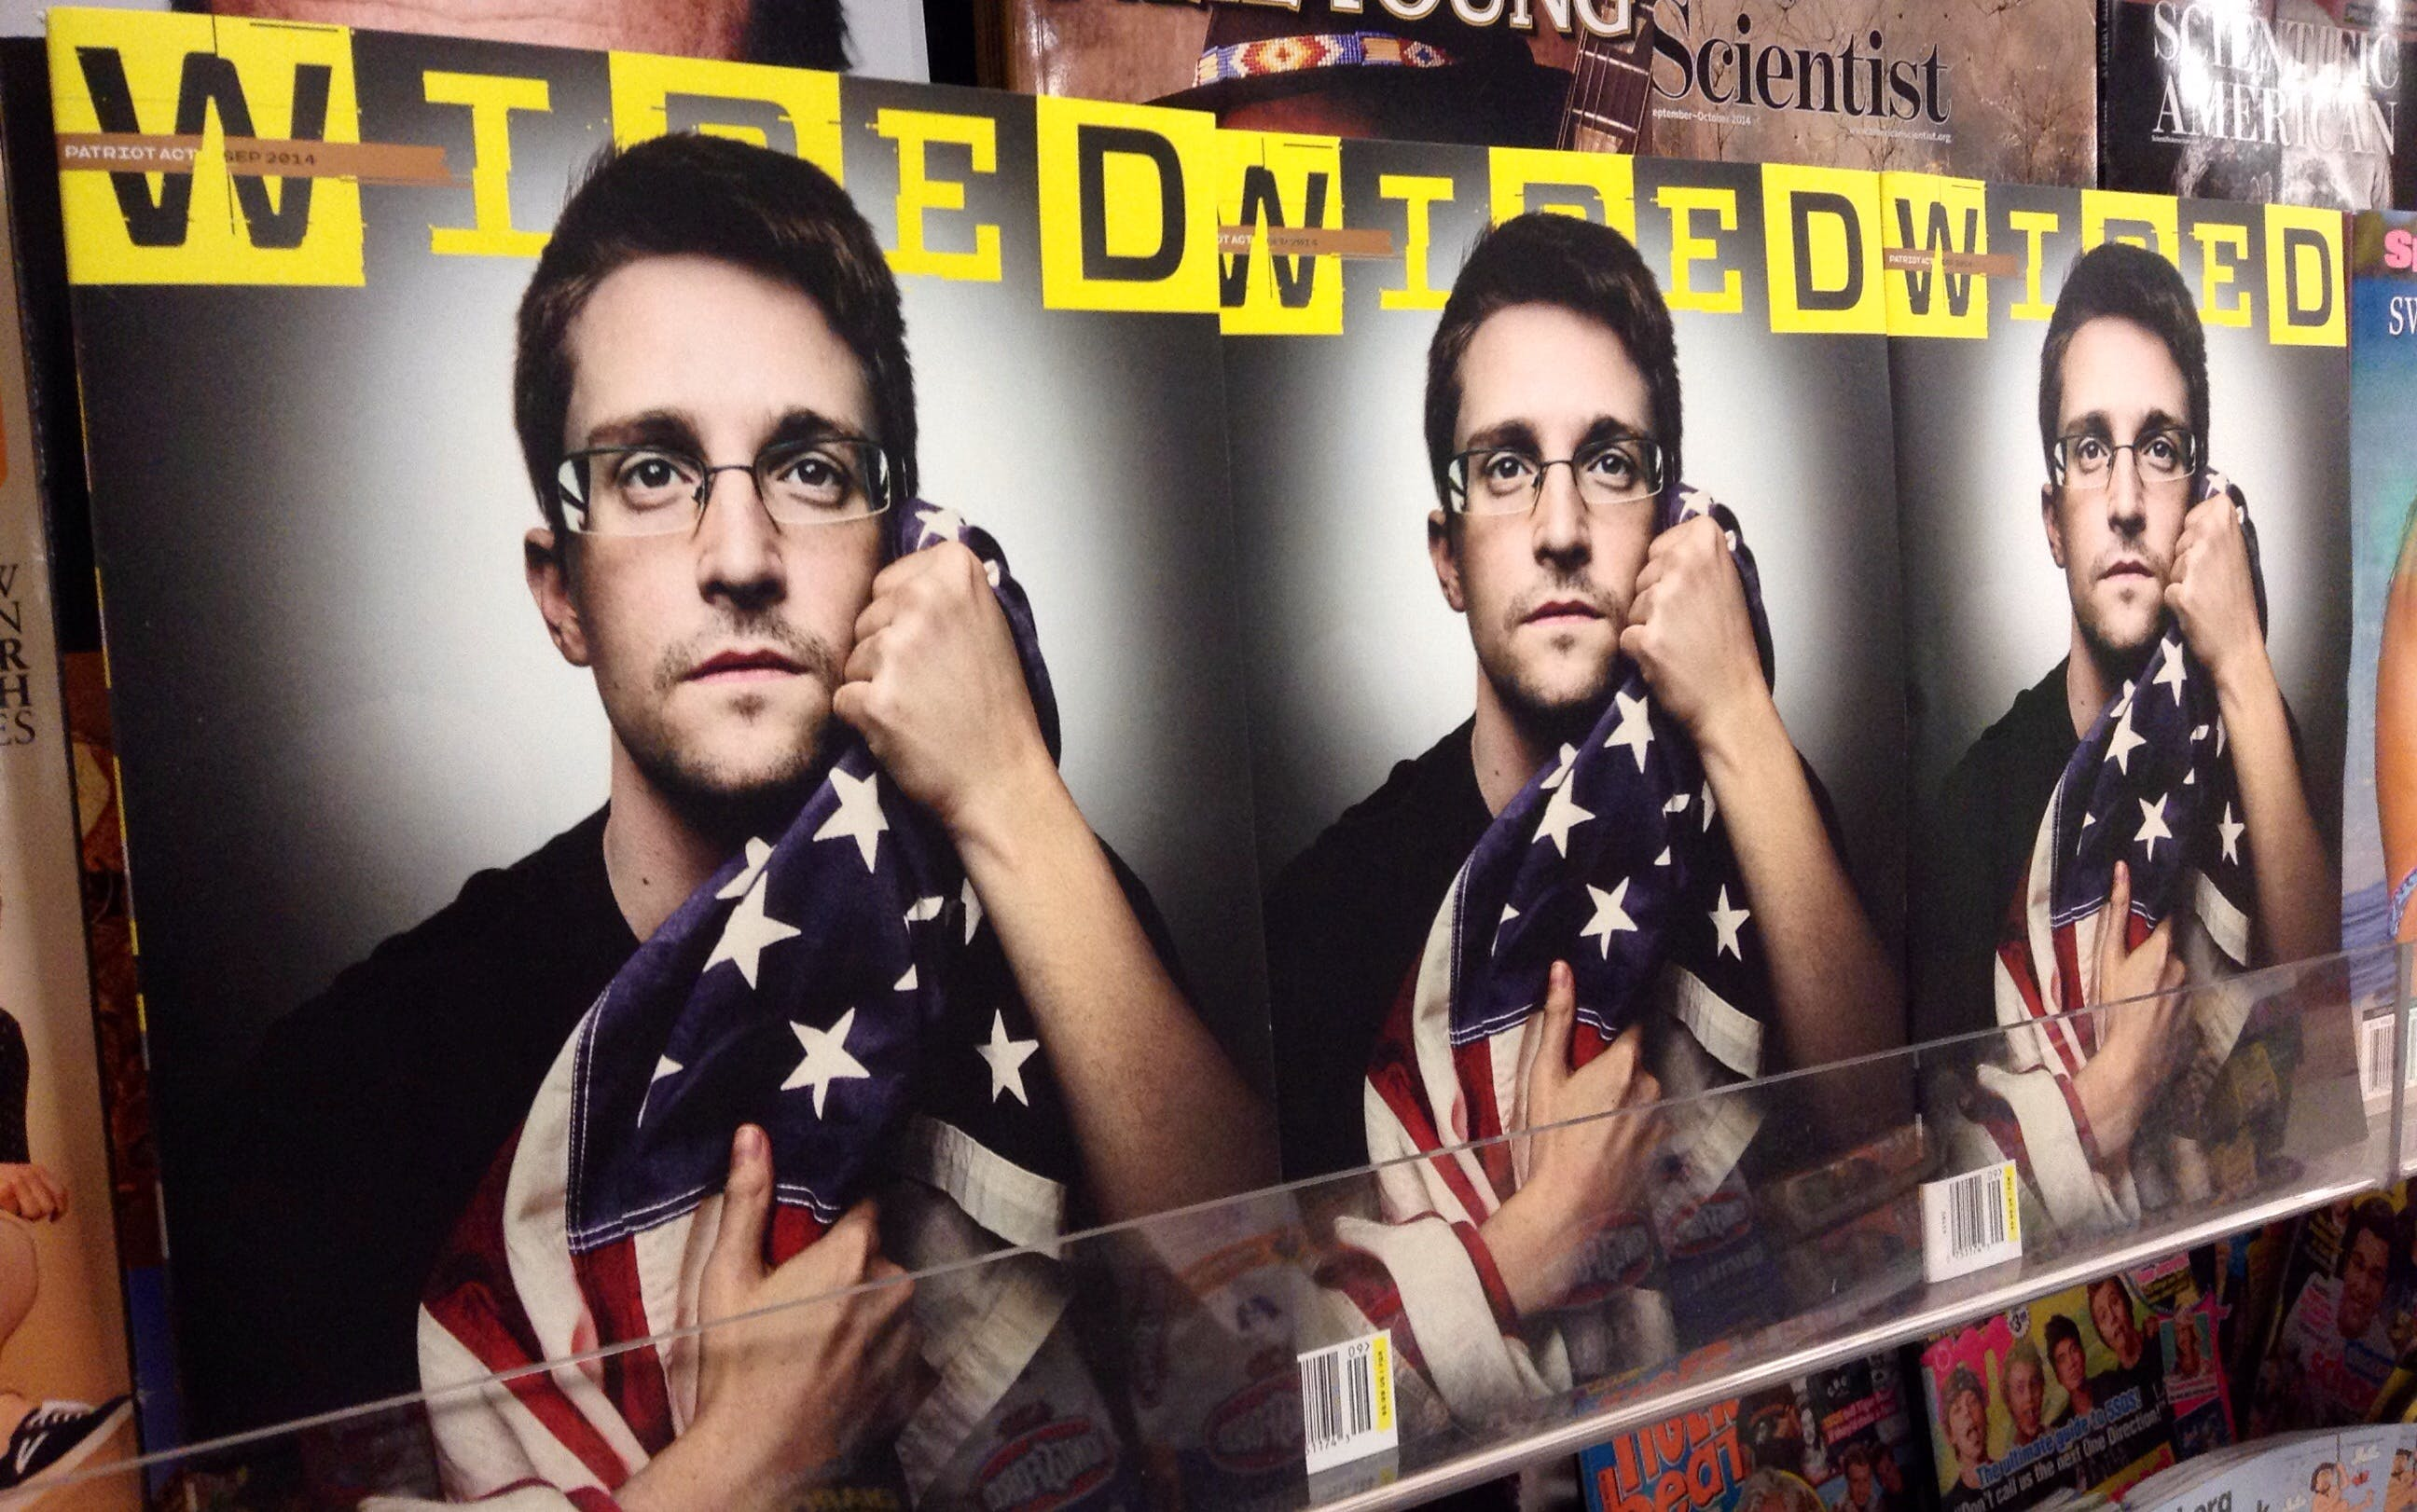 "<p>Numerous media outlets used DocumentCloud to support their coverage of high-profile stories like WikiLeaks and the release of classified documents by Edward Snowden, pictured here on the cover of Wired. Photo: <a data-rapid_p=""35"" data-track=""attributionNameClick"" href=""https://www.flickr.com/photos/jeepersmedia/"" title=""Go to Mike Mozart's photostream"">Mike Mozart</a> under <a href=""https://creativecommons.org/licenses/by/2.0/"" rel=""noopener noreferrer"" target=""_blank"">License</a></p>"